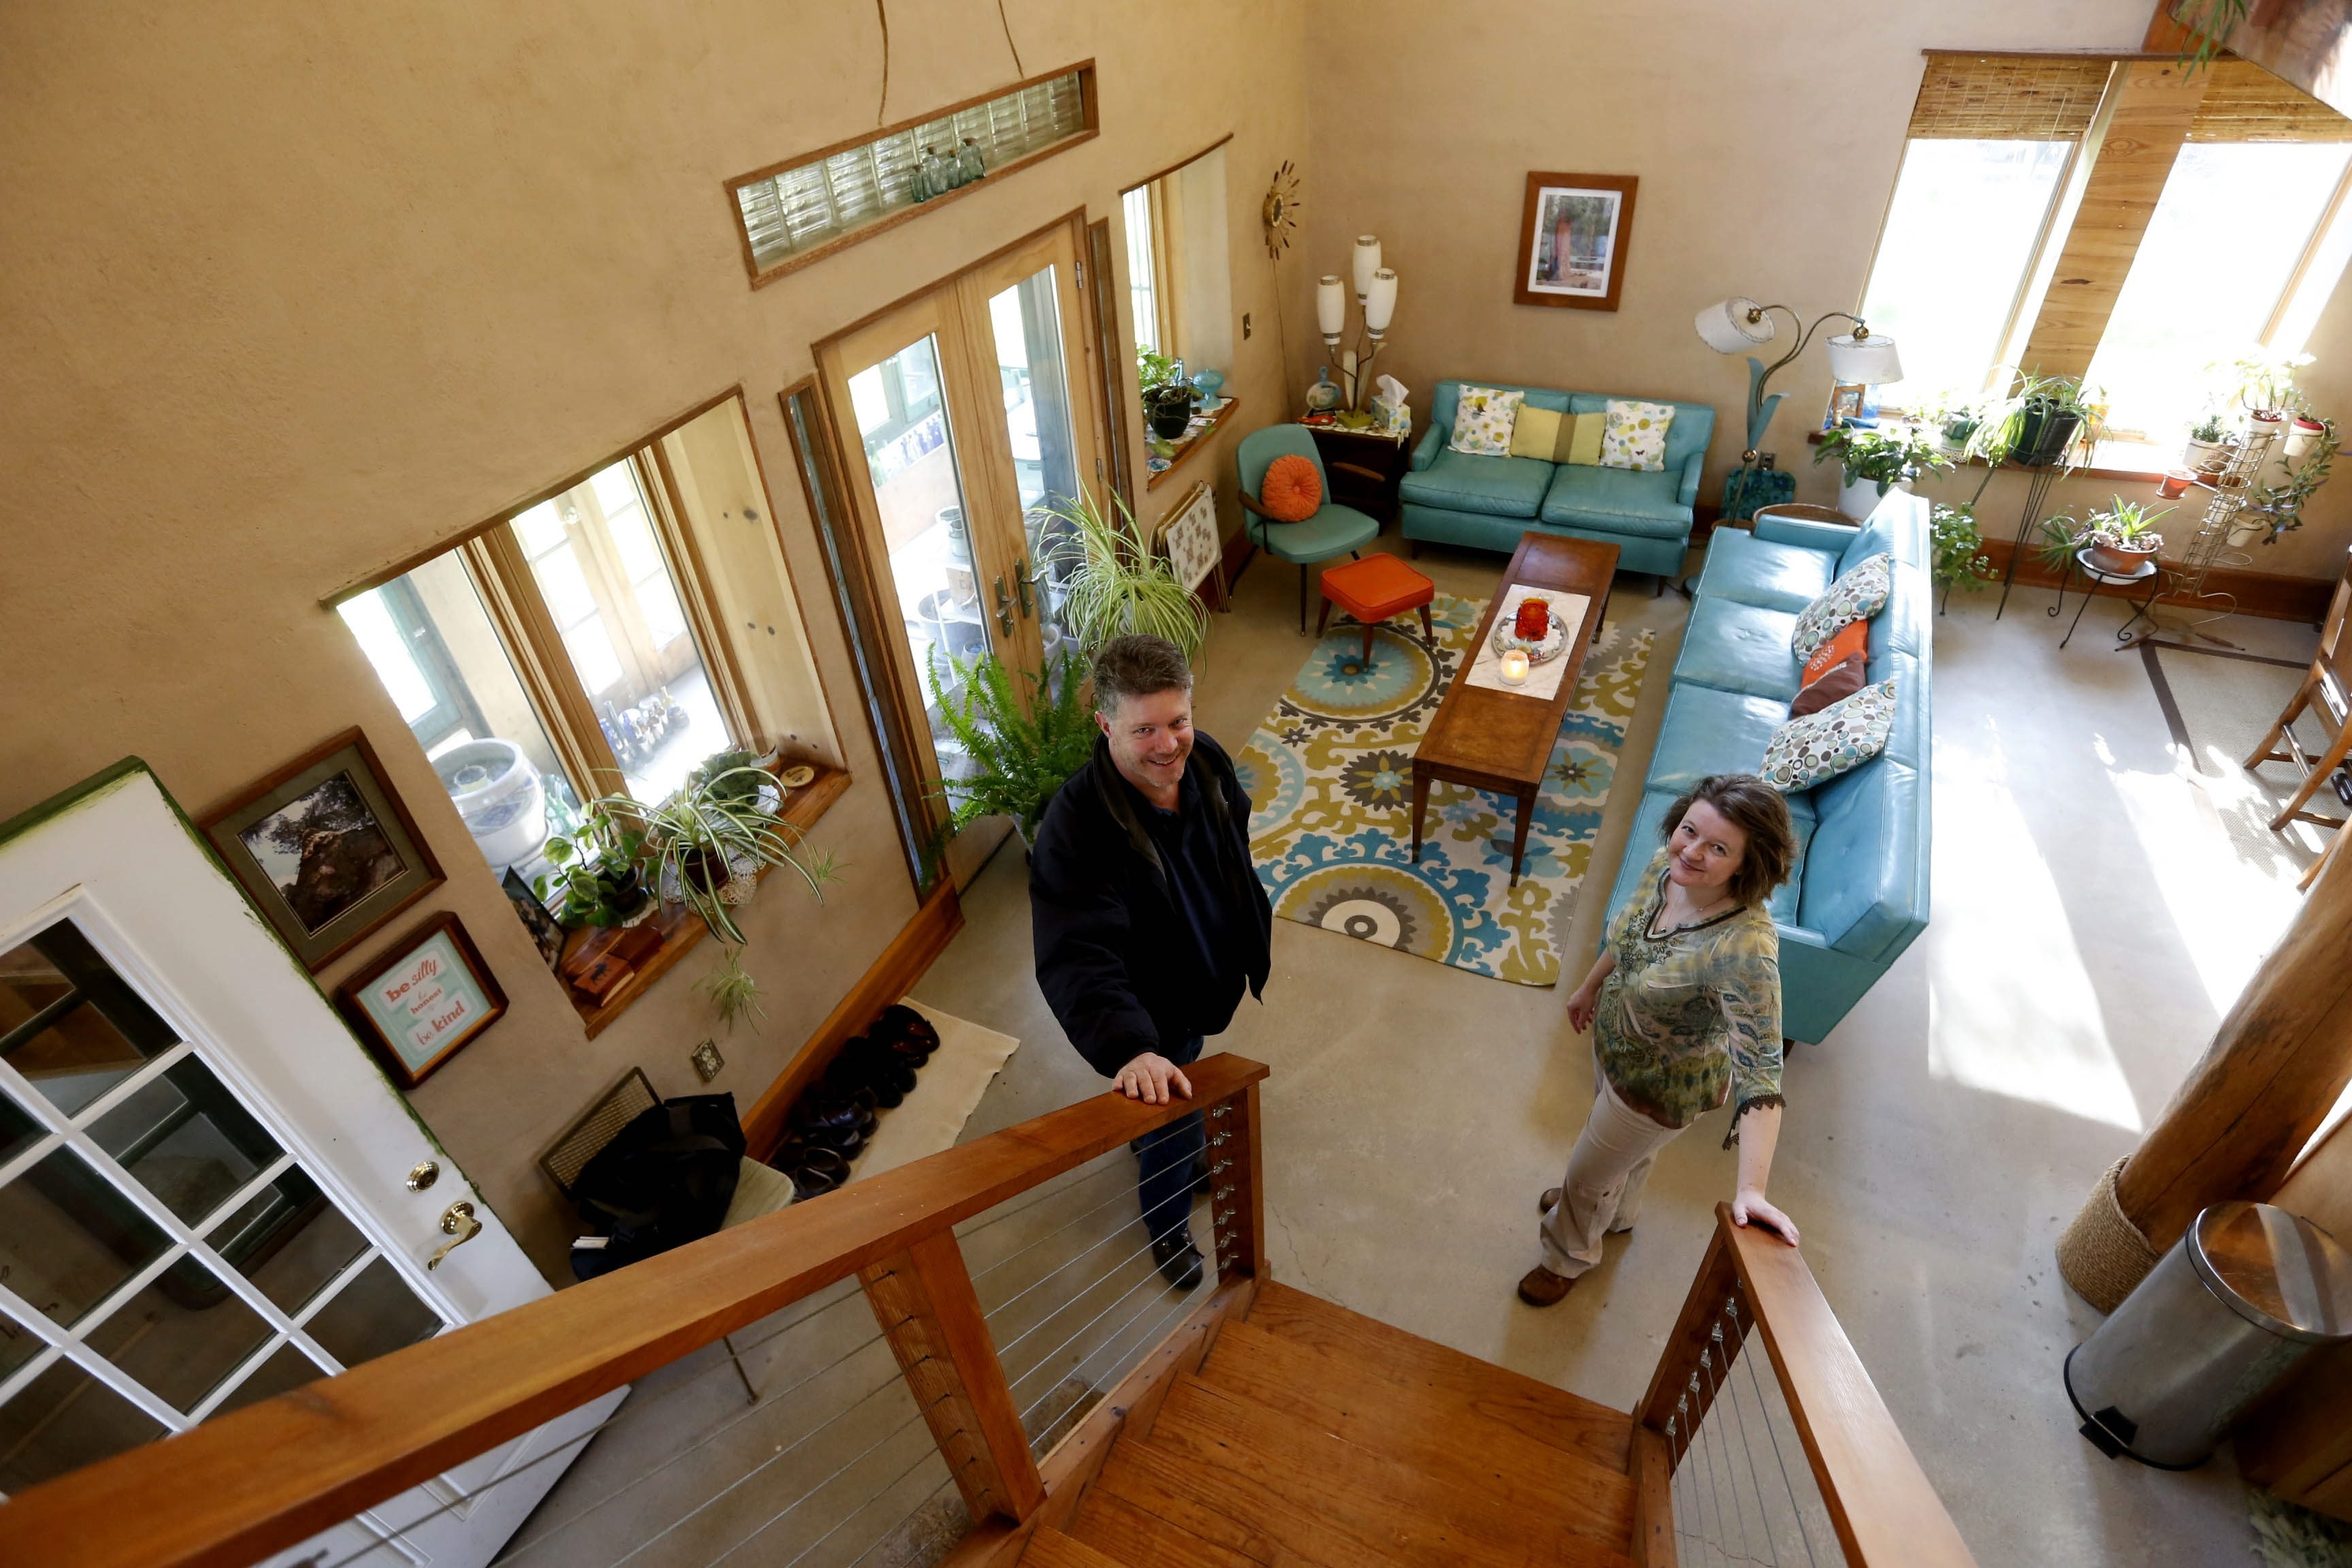 Builder David Lanfear and Carrie Zaenglein in Carrie Zaenglein's straw bale home in Depew on Tuesday, April 28, 2015.  (Robert Kirkham/Buffalo News)